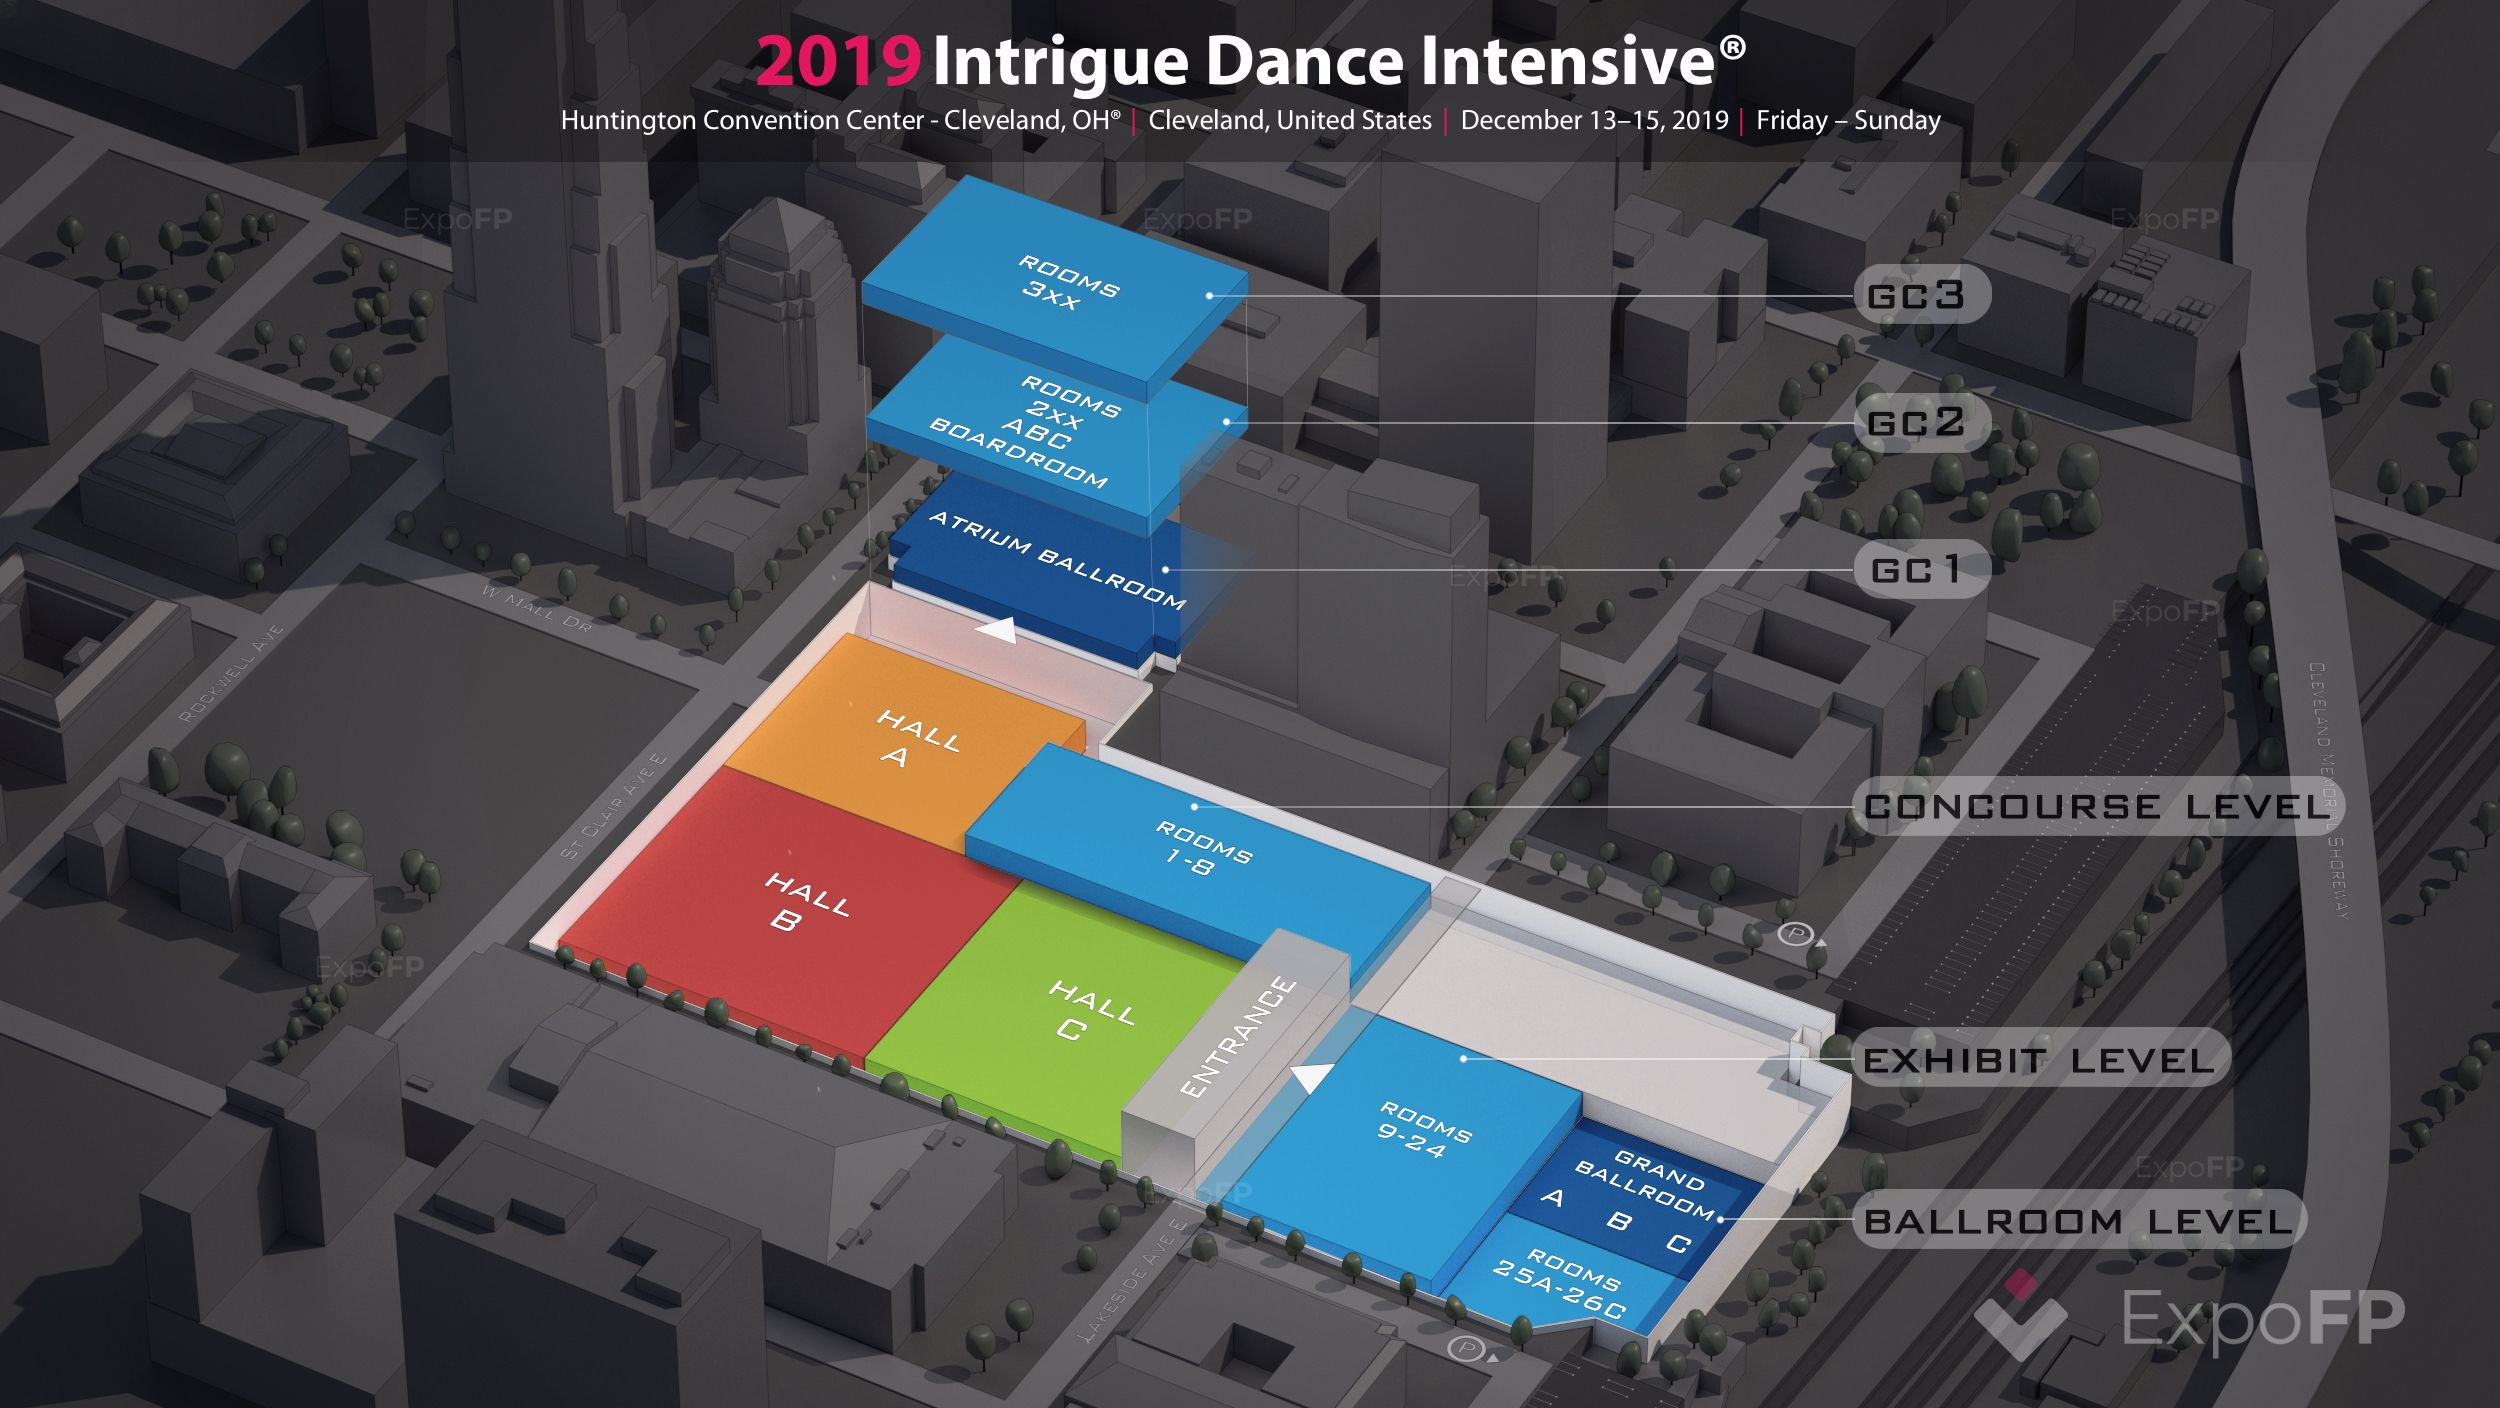 Nari Home Improvement Show 2020.Intrigue Dance Intensive 2019 In Huntington Convention